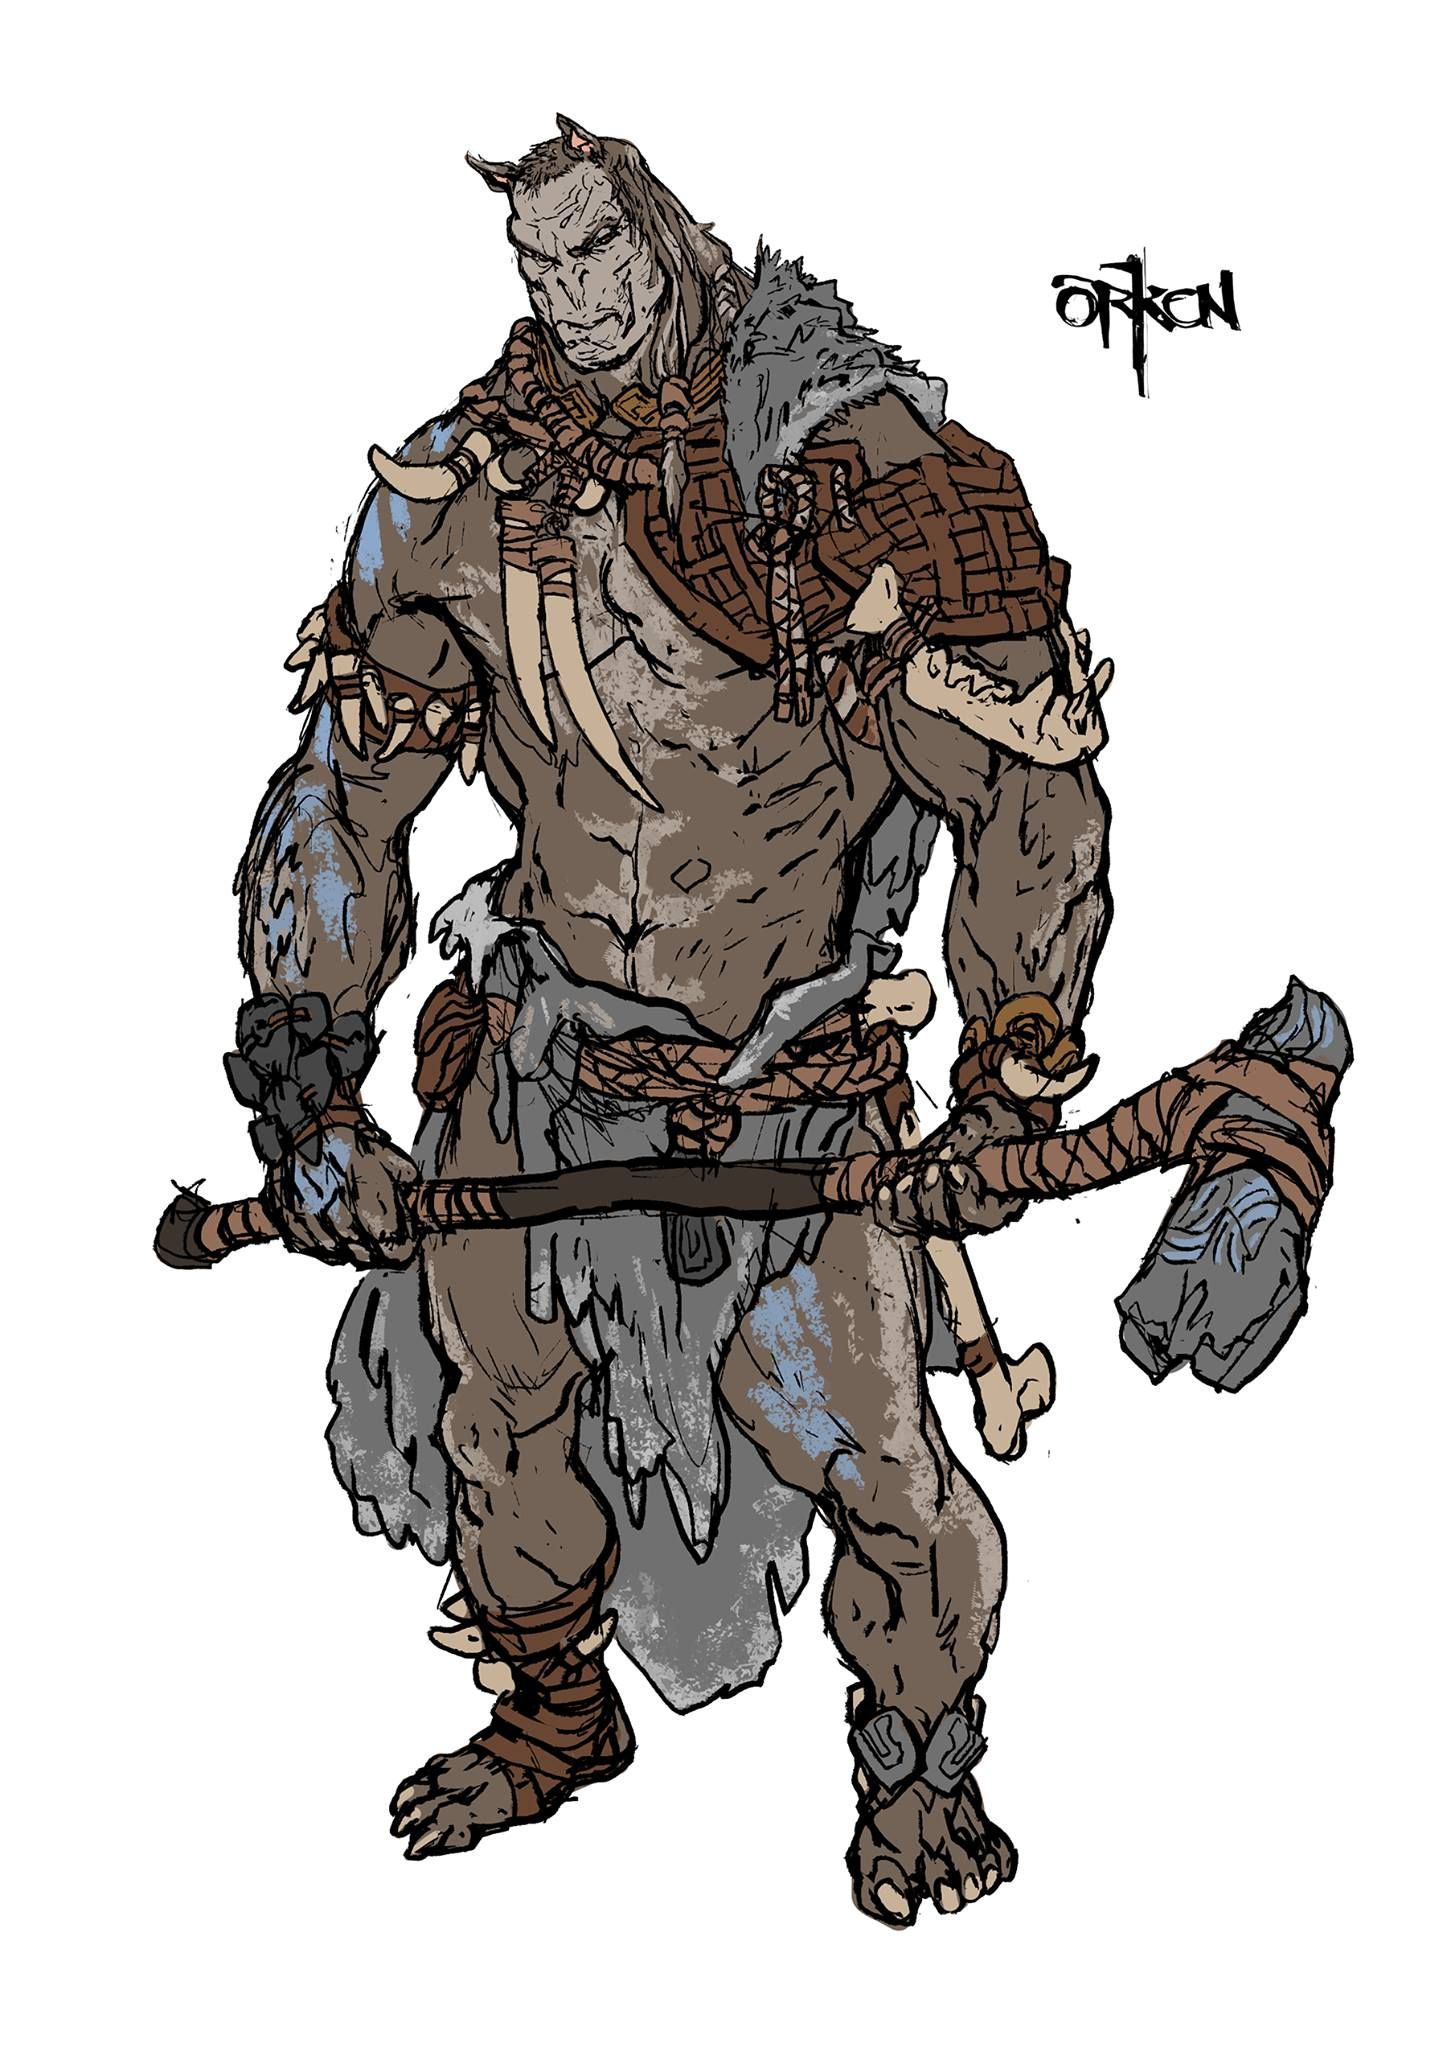 Orken Concept Art 121 Vk Person Soldier - Year of Clean Water